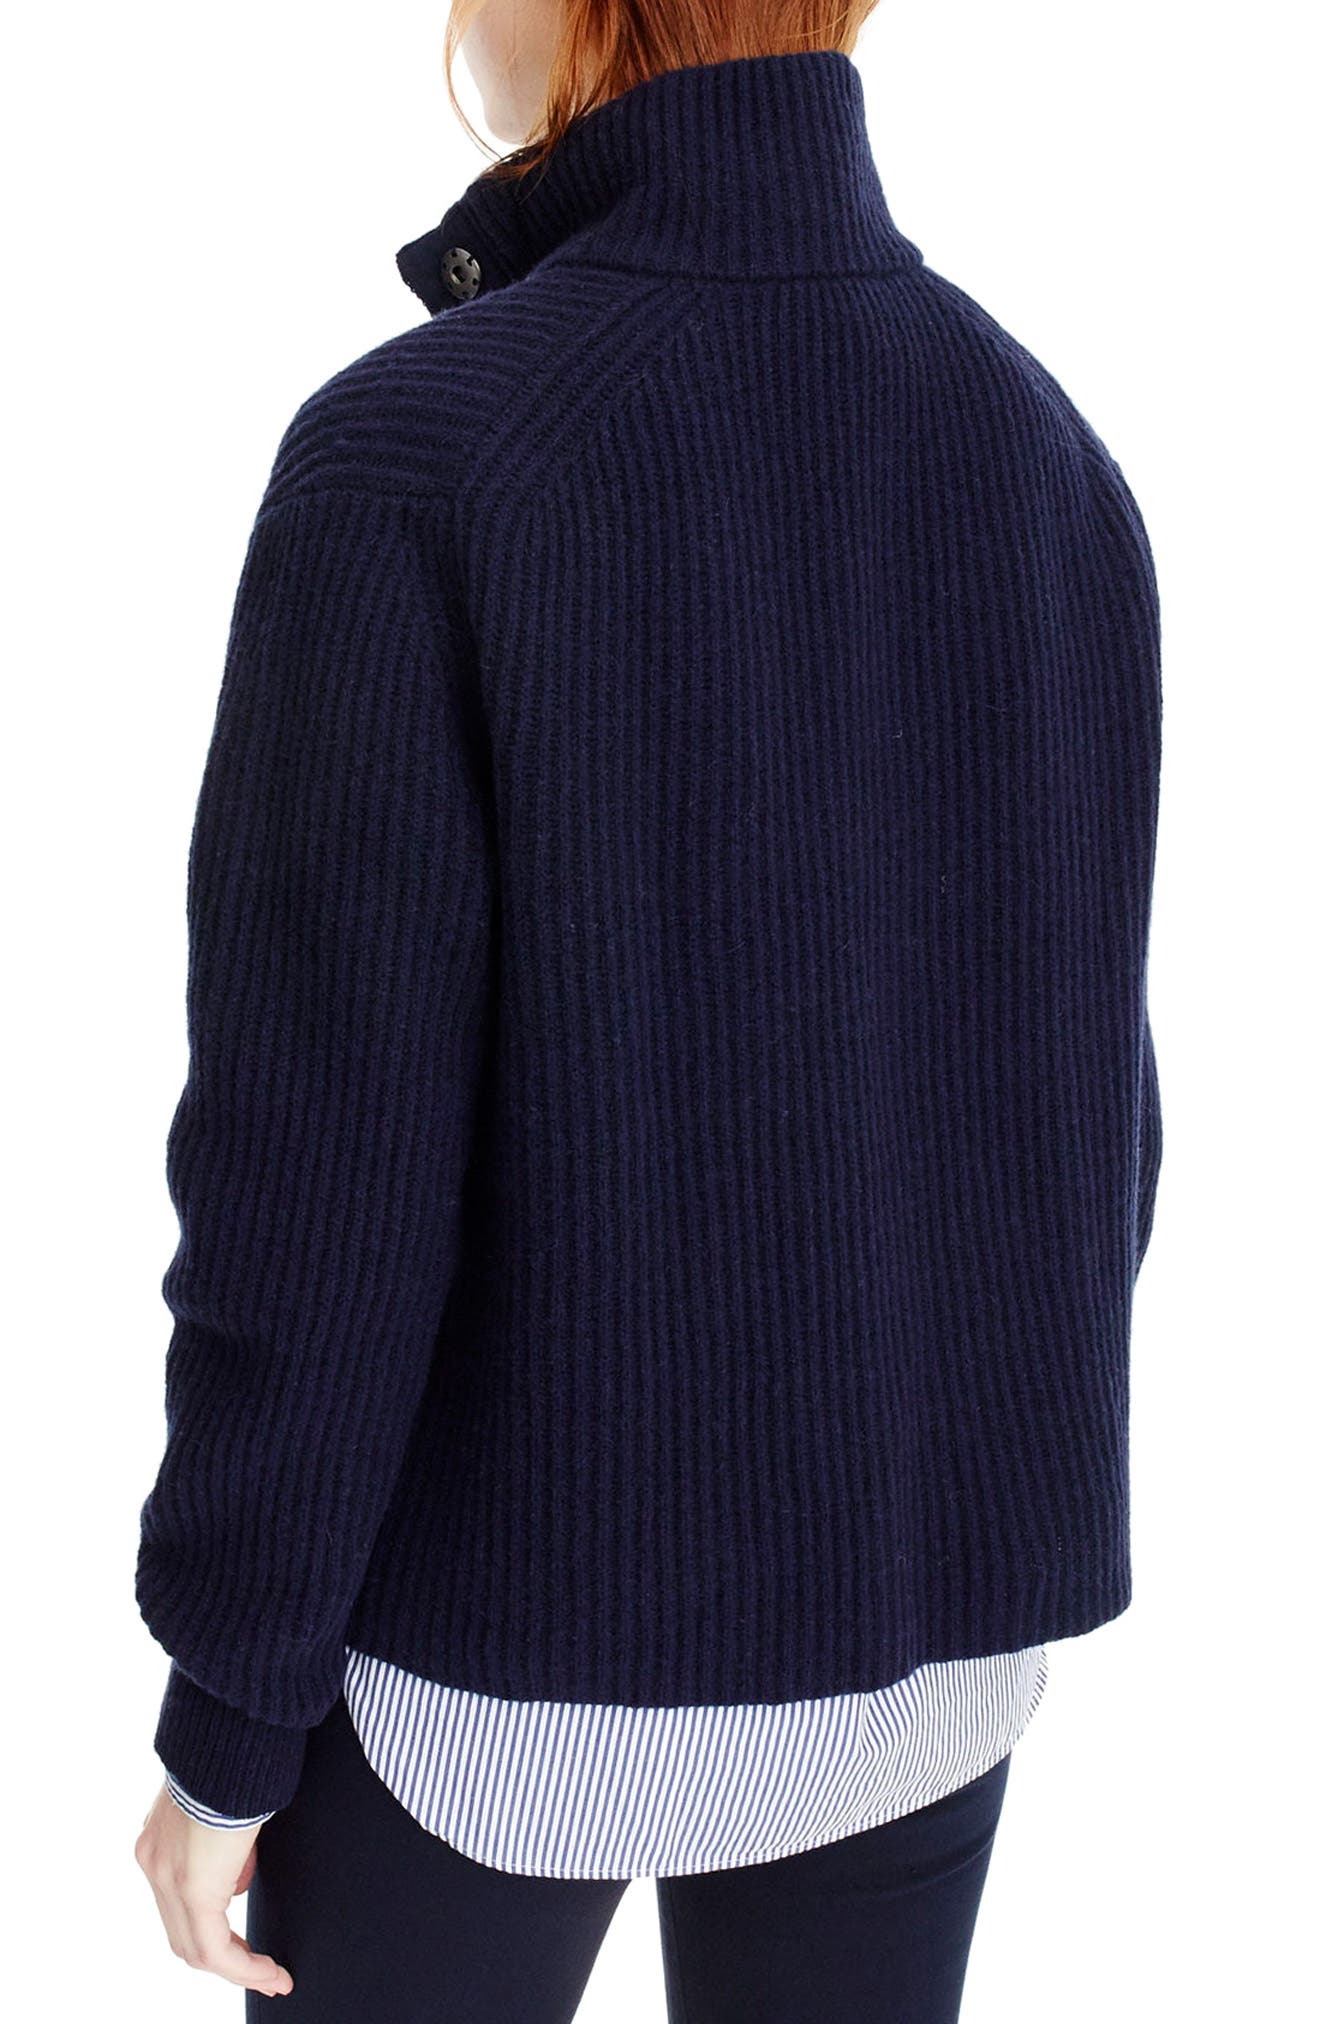 J.Crew Kay Lambswool Pullover Sweater,                             Alternate thumbnail 2, color,                             Navy